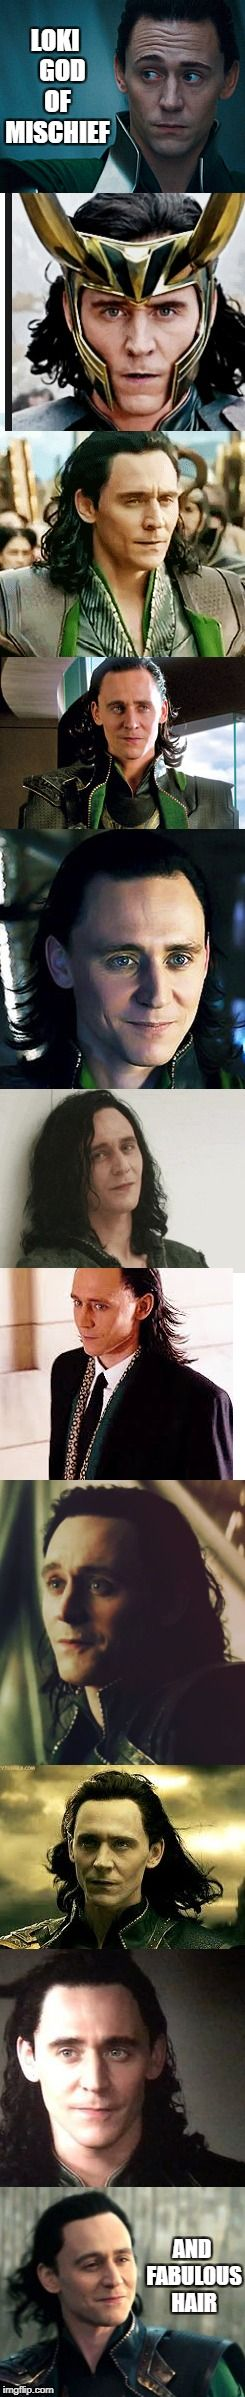 """I hope we never hear Loki say that he deserved all the abuse done to him although, he did deserve consequences for murdering folks as anyone would even though he was under Thanos' influence. Loki does NOT deserve abuse. It would be like an abused woman who gets battered by her abusive husband that confesses, """"It's my fault..I MADE him beat me..I deserved it!"""" It's always the furthest from the truth, but here's the kicker...it comes from a place of trauma and self-hate. Loki's there."""